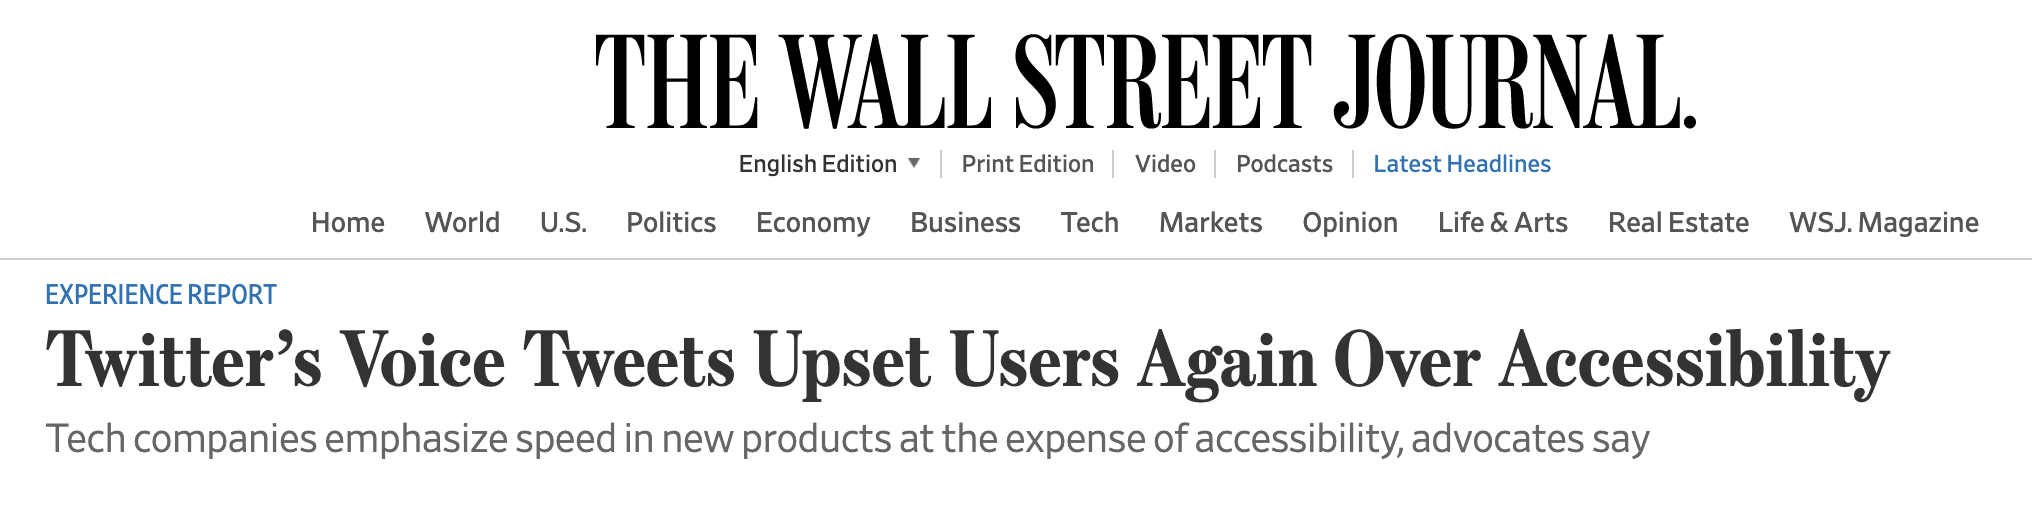 The wall street journal—Twitter's Voice Tweets Upset Users Again Over Accessibility - speed at the expense of a11y